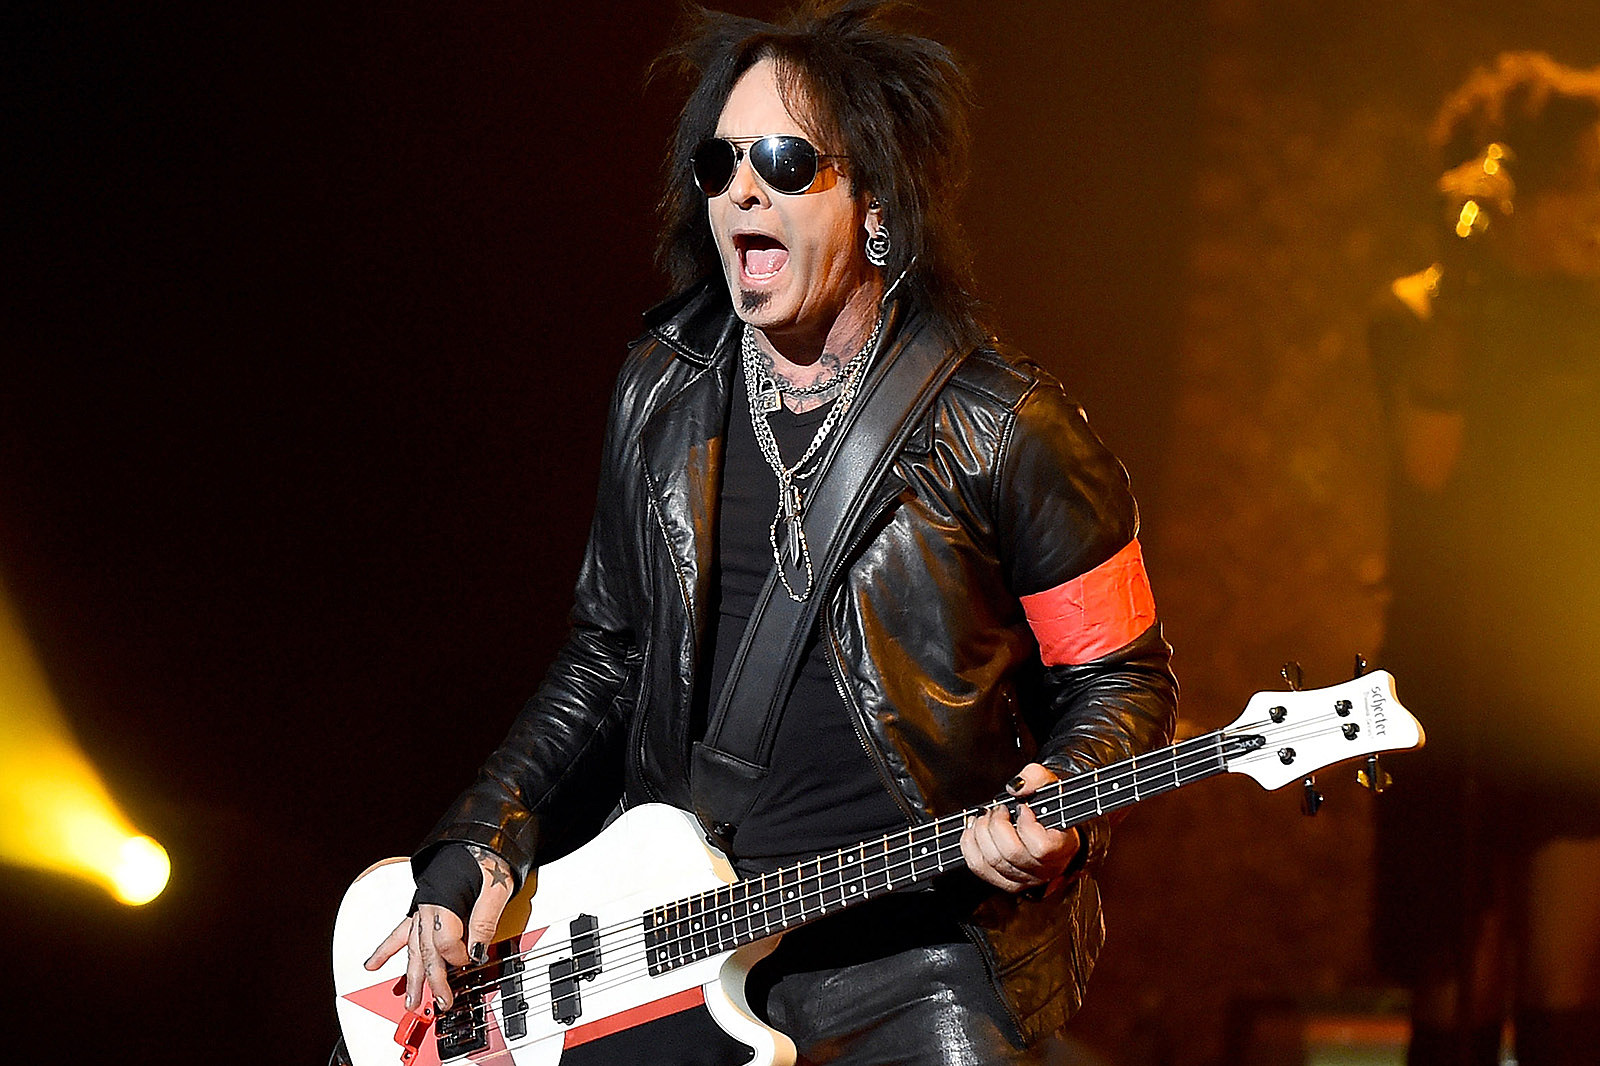 Nikki Sixx Says His Path to Fame Was 'Not the Smartest Idea'